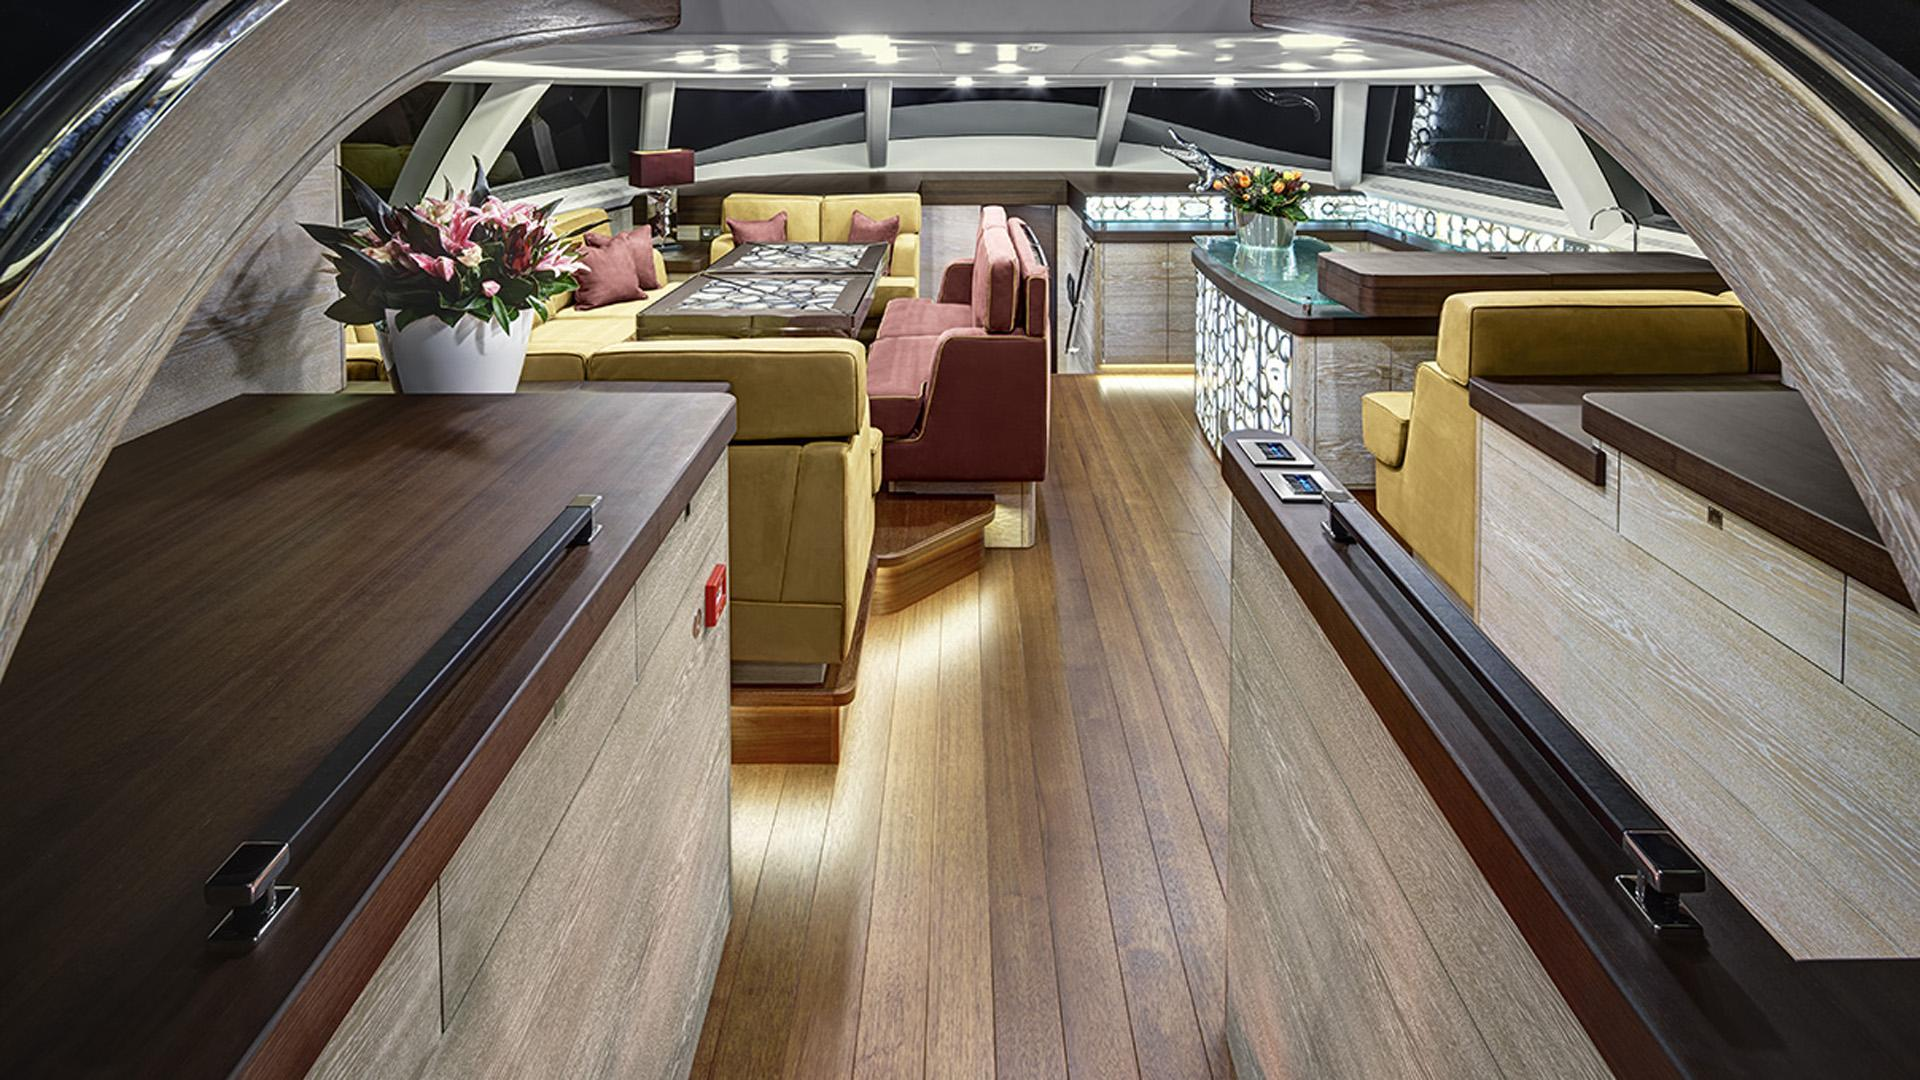 escapade sailing yacht fitzroy yachts 39m 2014 lounge